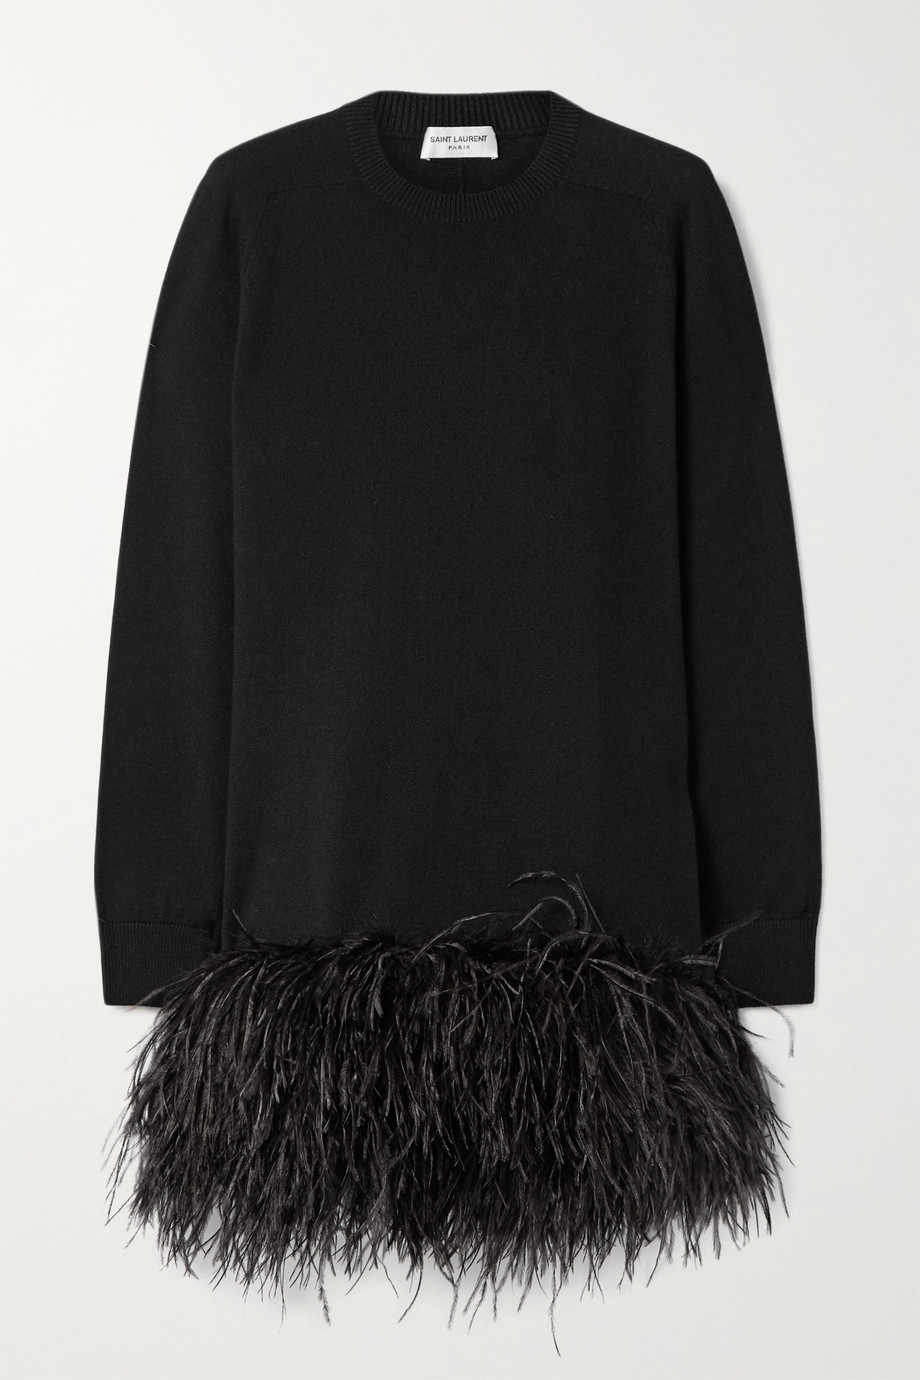 SAINT LAURENT Feather-trimmed cashmere mini dress